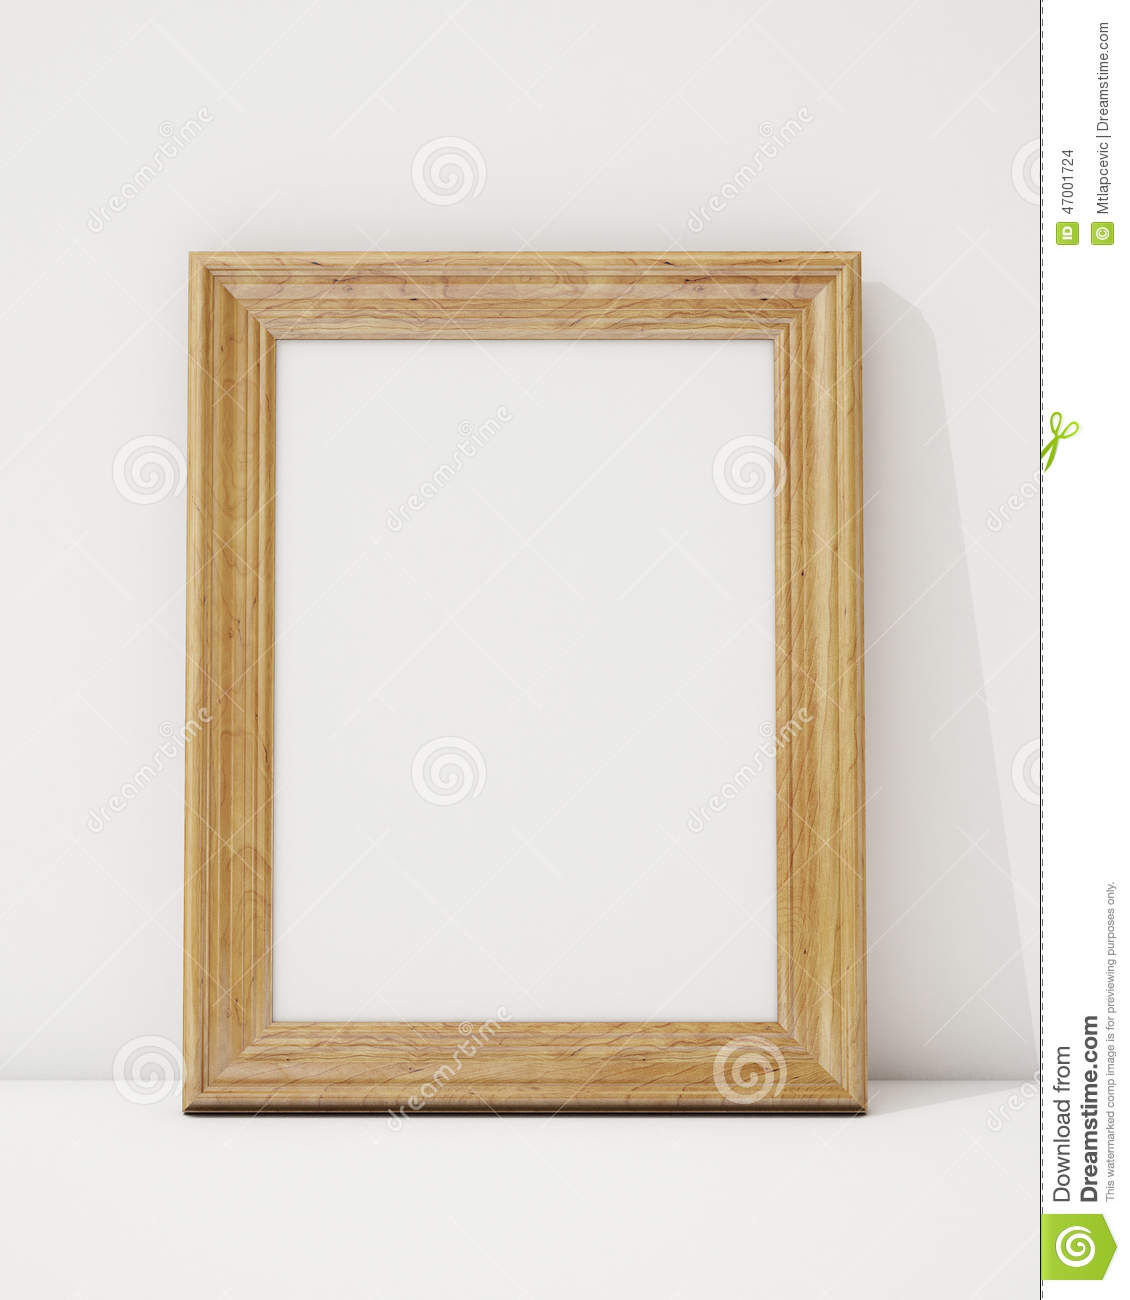 wood picture frame template - photo #21